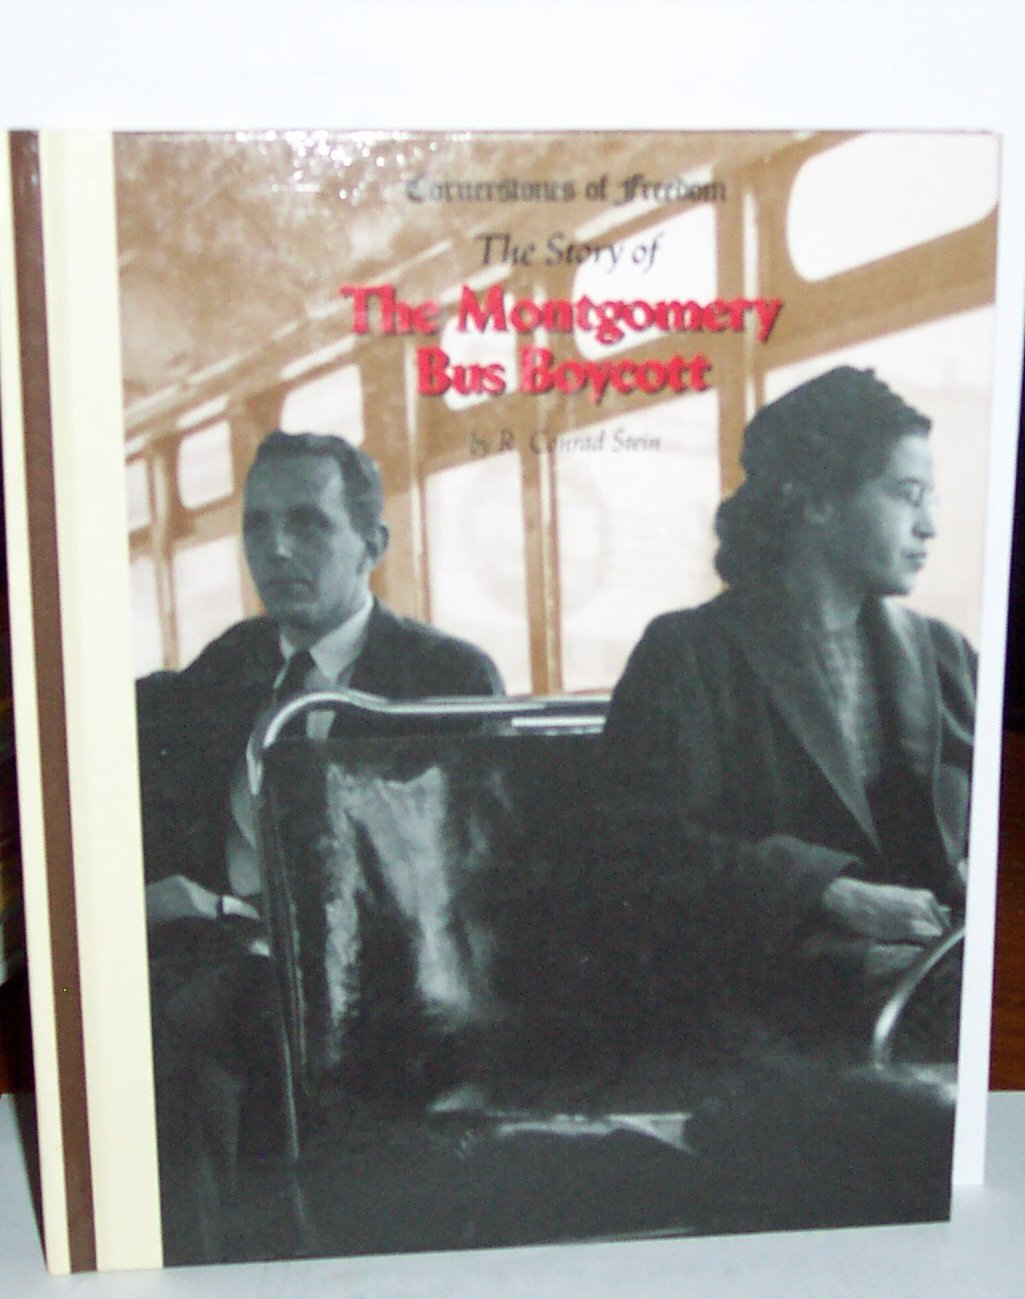 The Montgomery Bus Boycott (Cornerstones of Freedom Second Series) by R. Conrad Stein [Hardback]